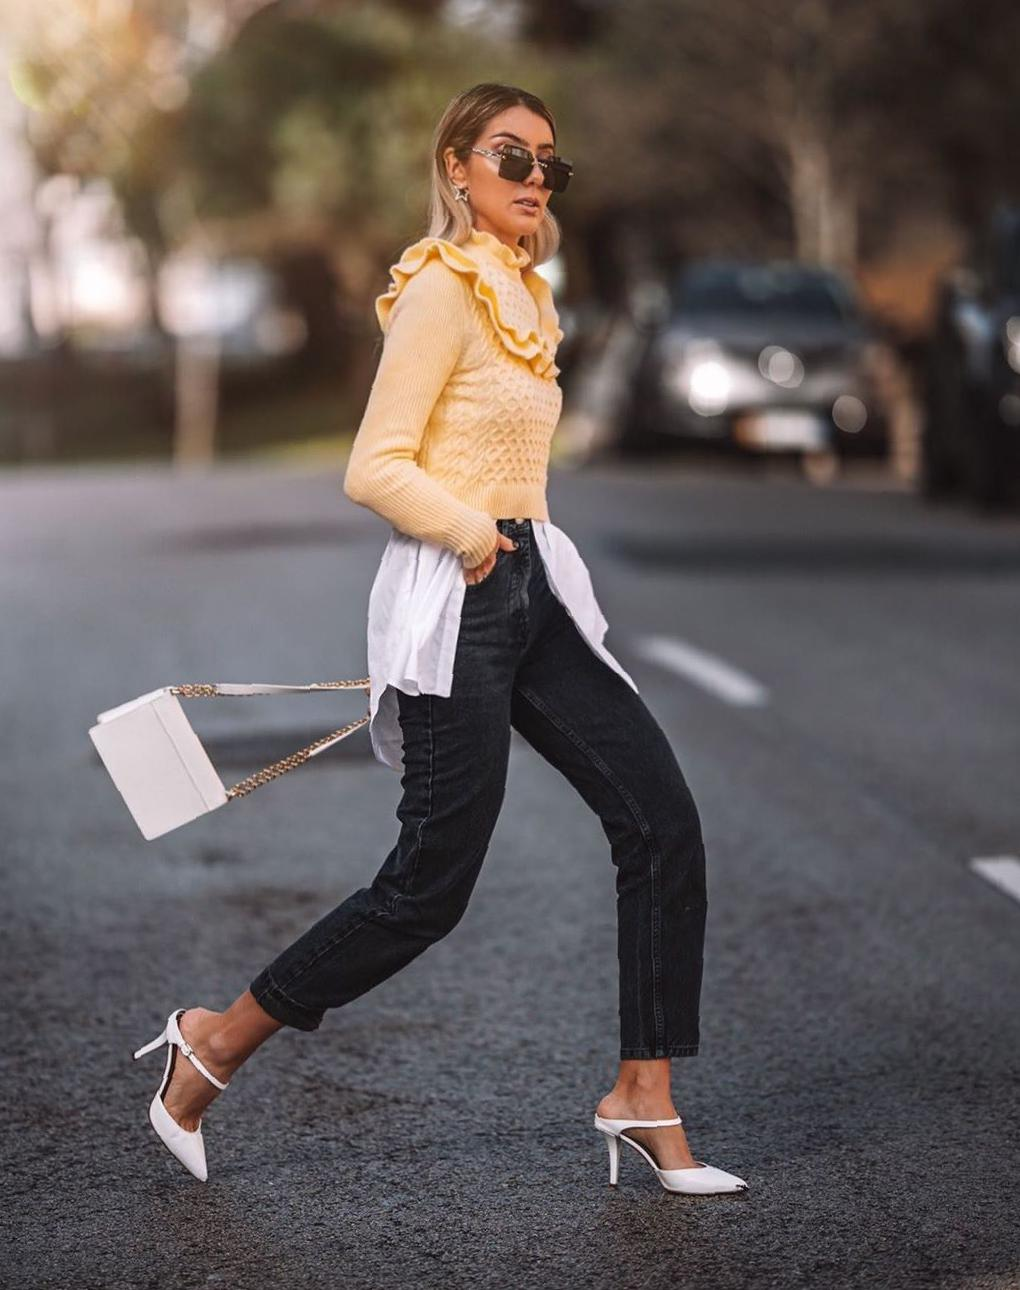 35 Spring Daily Outfit Ideas That Deserve Your Attention 2020 spring outfits,outfits jeans,casual spring outfits,trendy spring outfits,outfits for work,outfits for women,outfits ideas